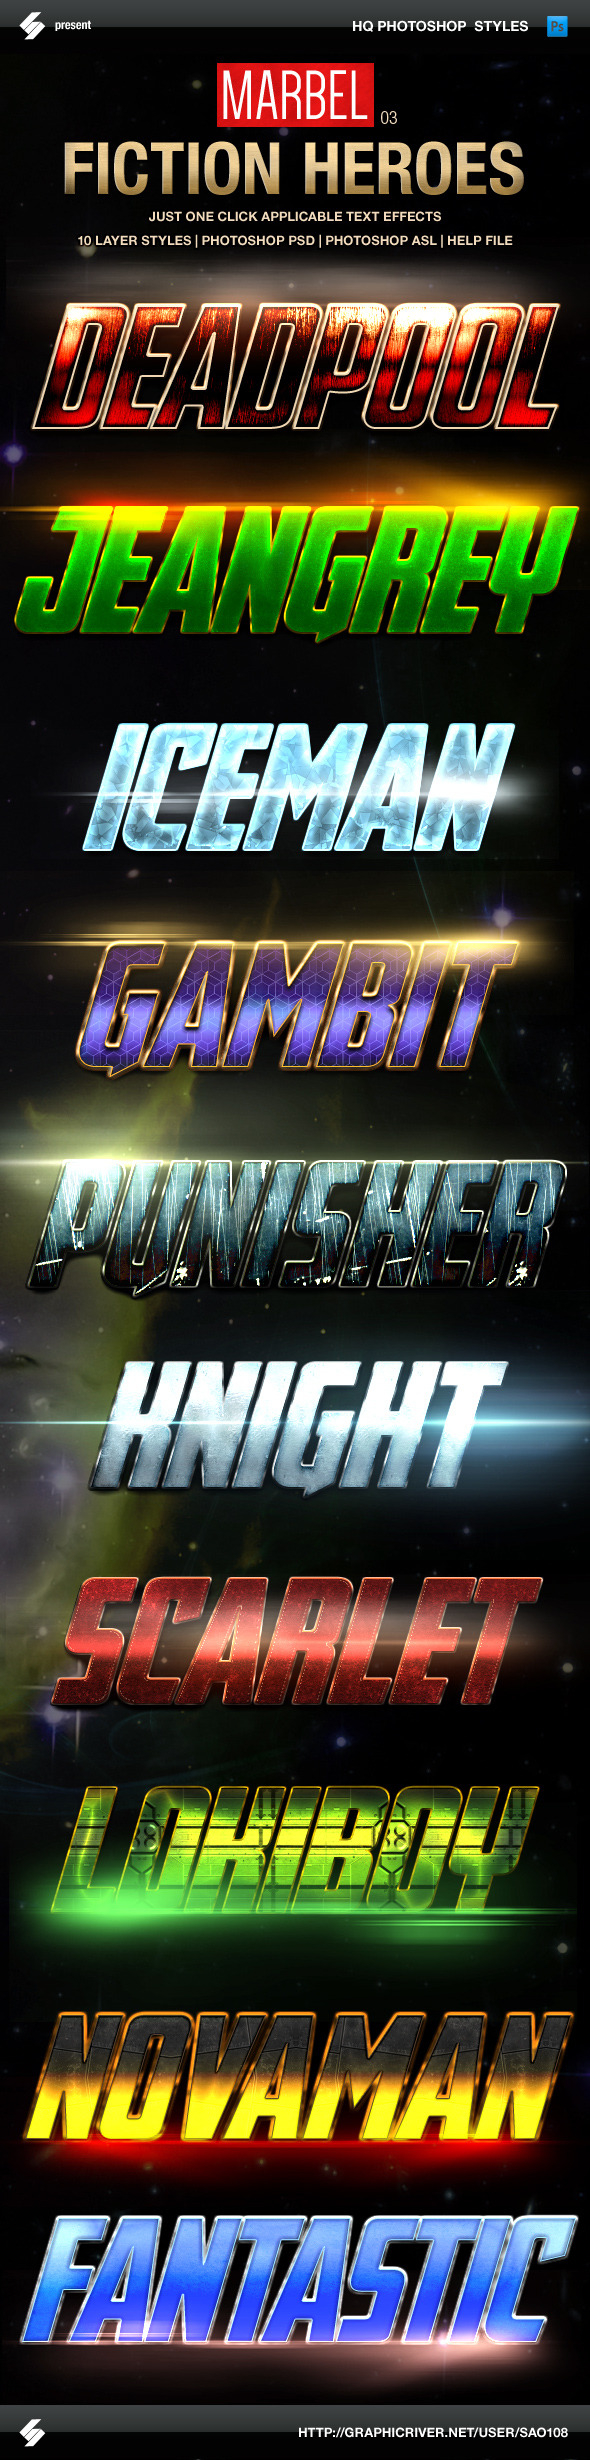 Blockbuster Heroes Style Text Effects 03